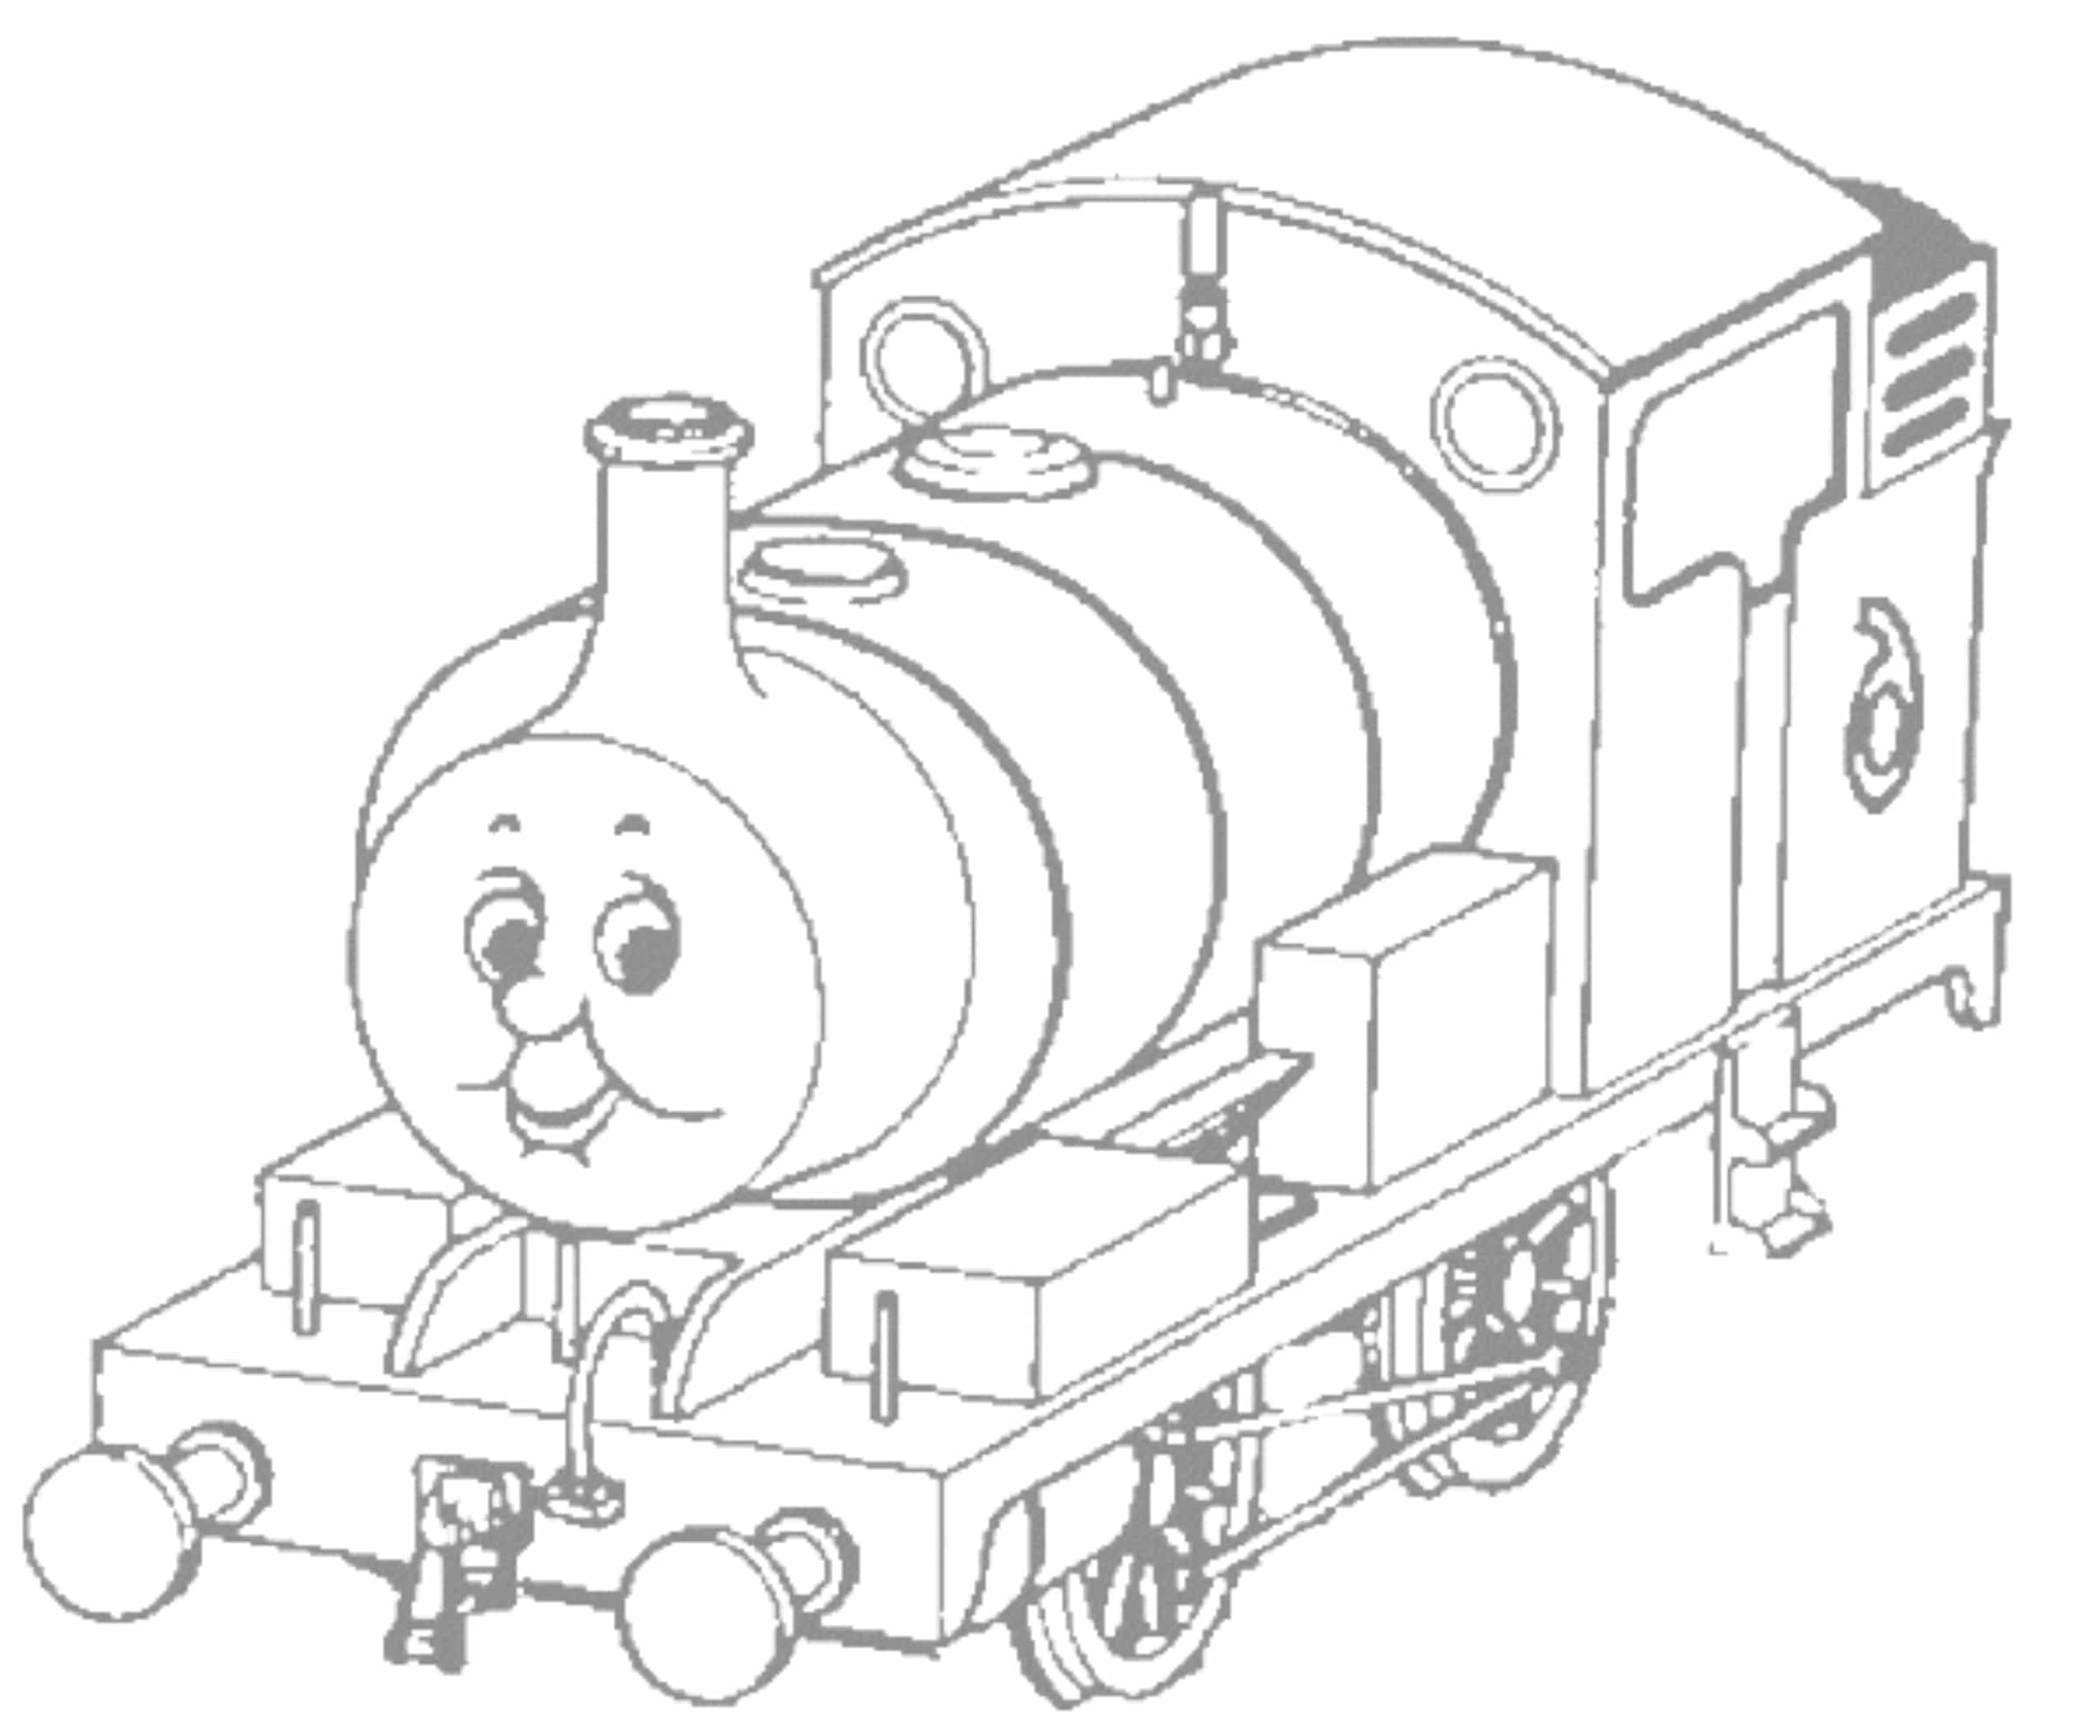 train coloring pages printable train coloring pages birthday printable coloring train printable pages